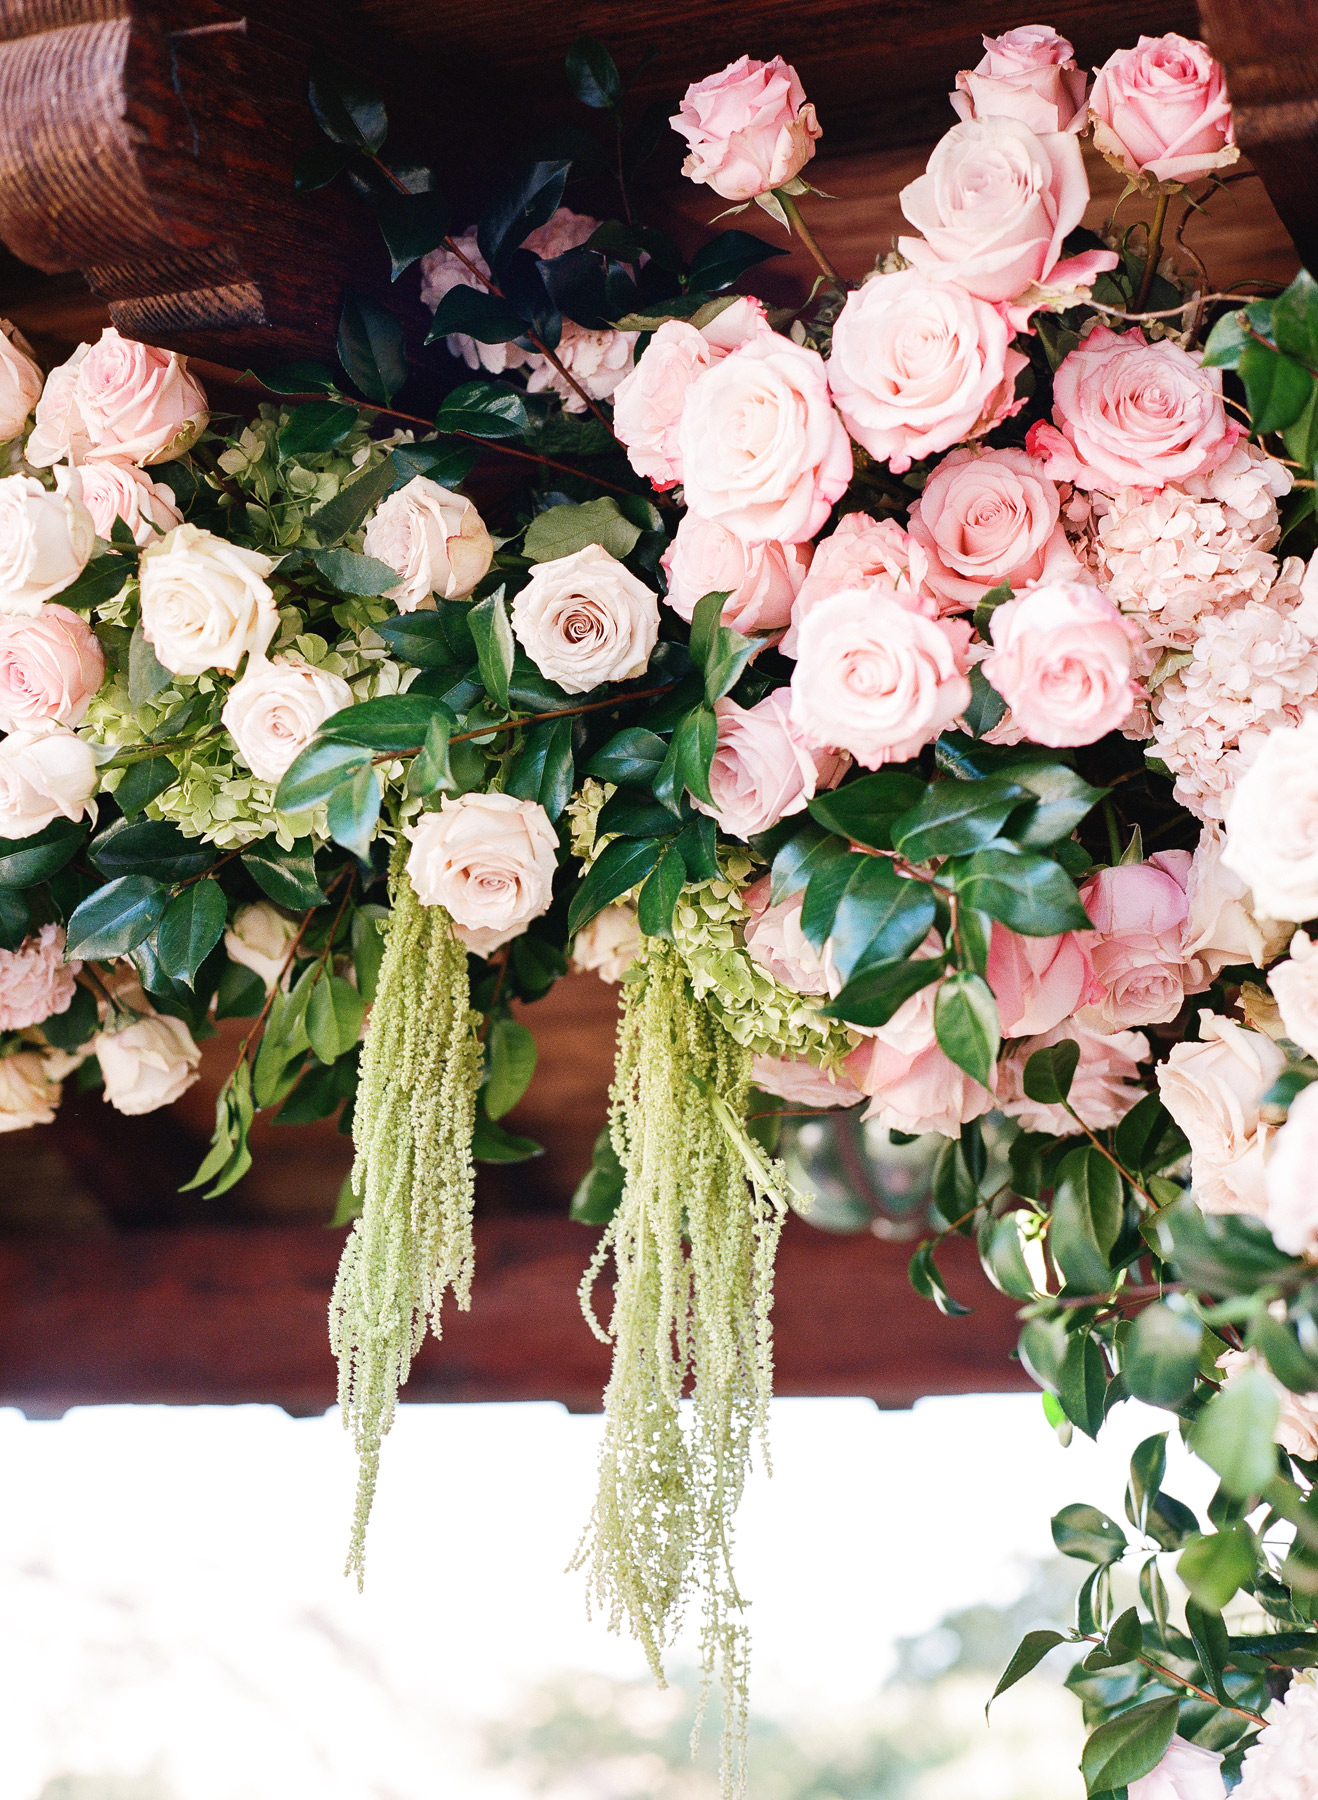 close-up of pink floral arch